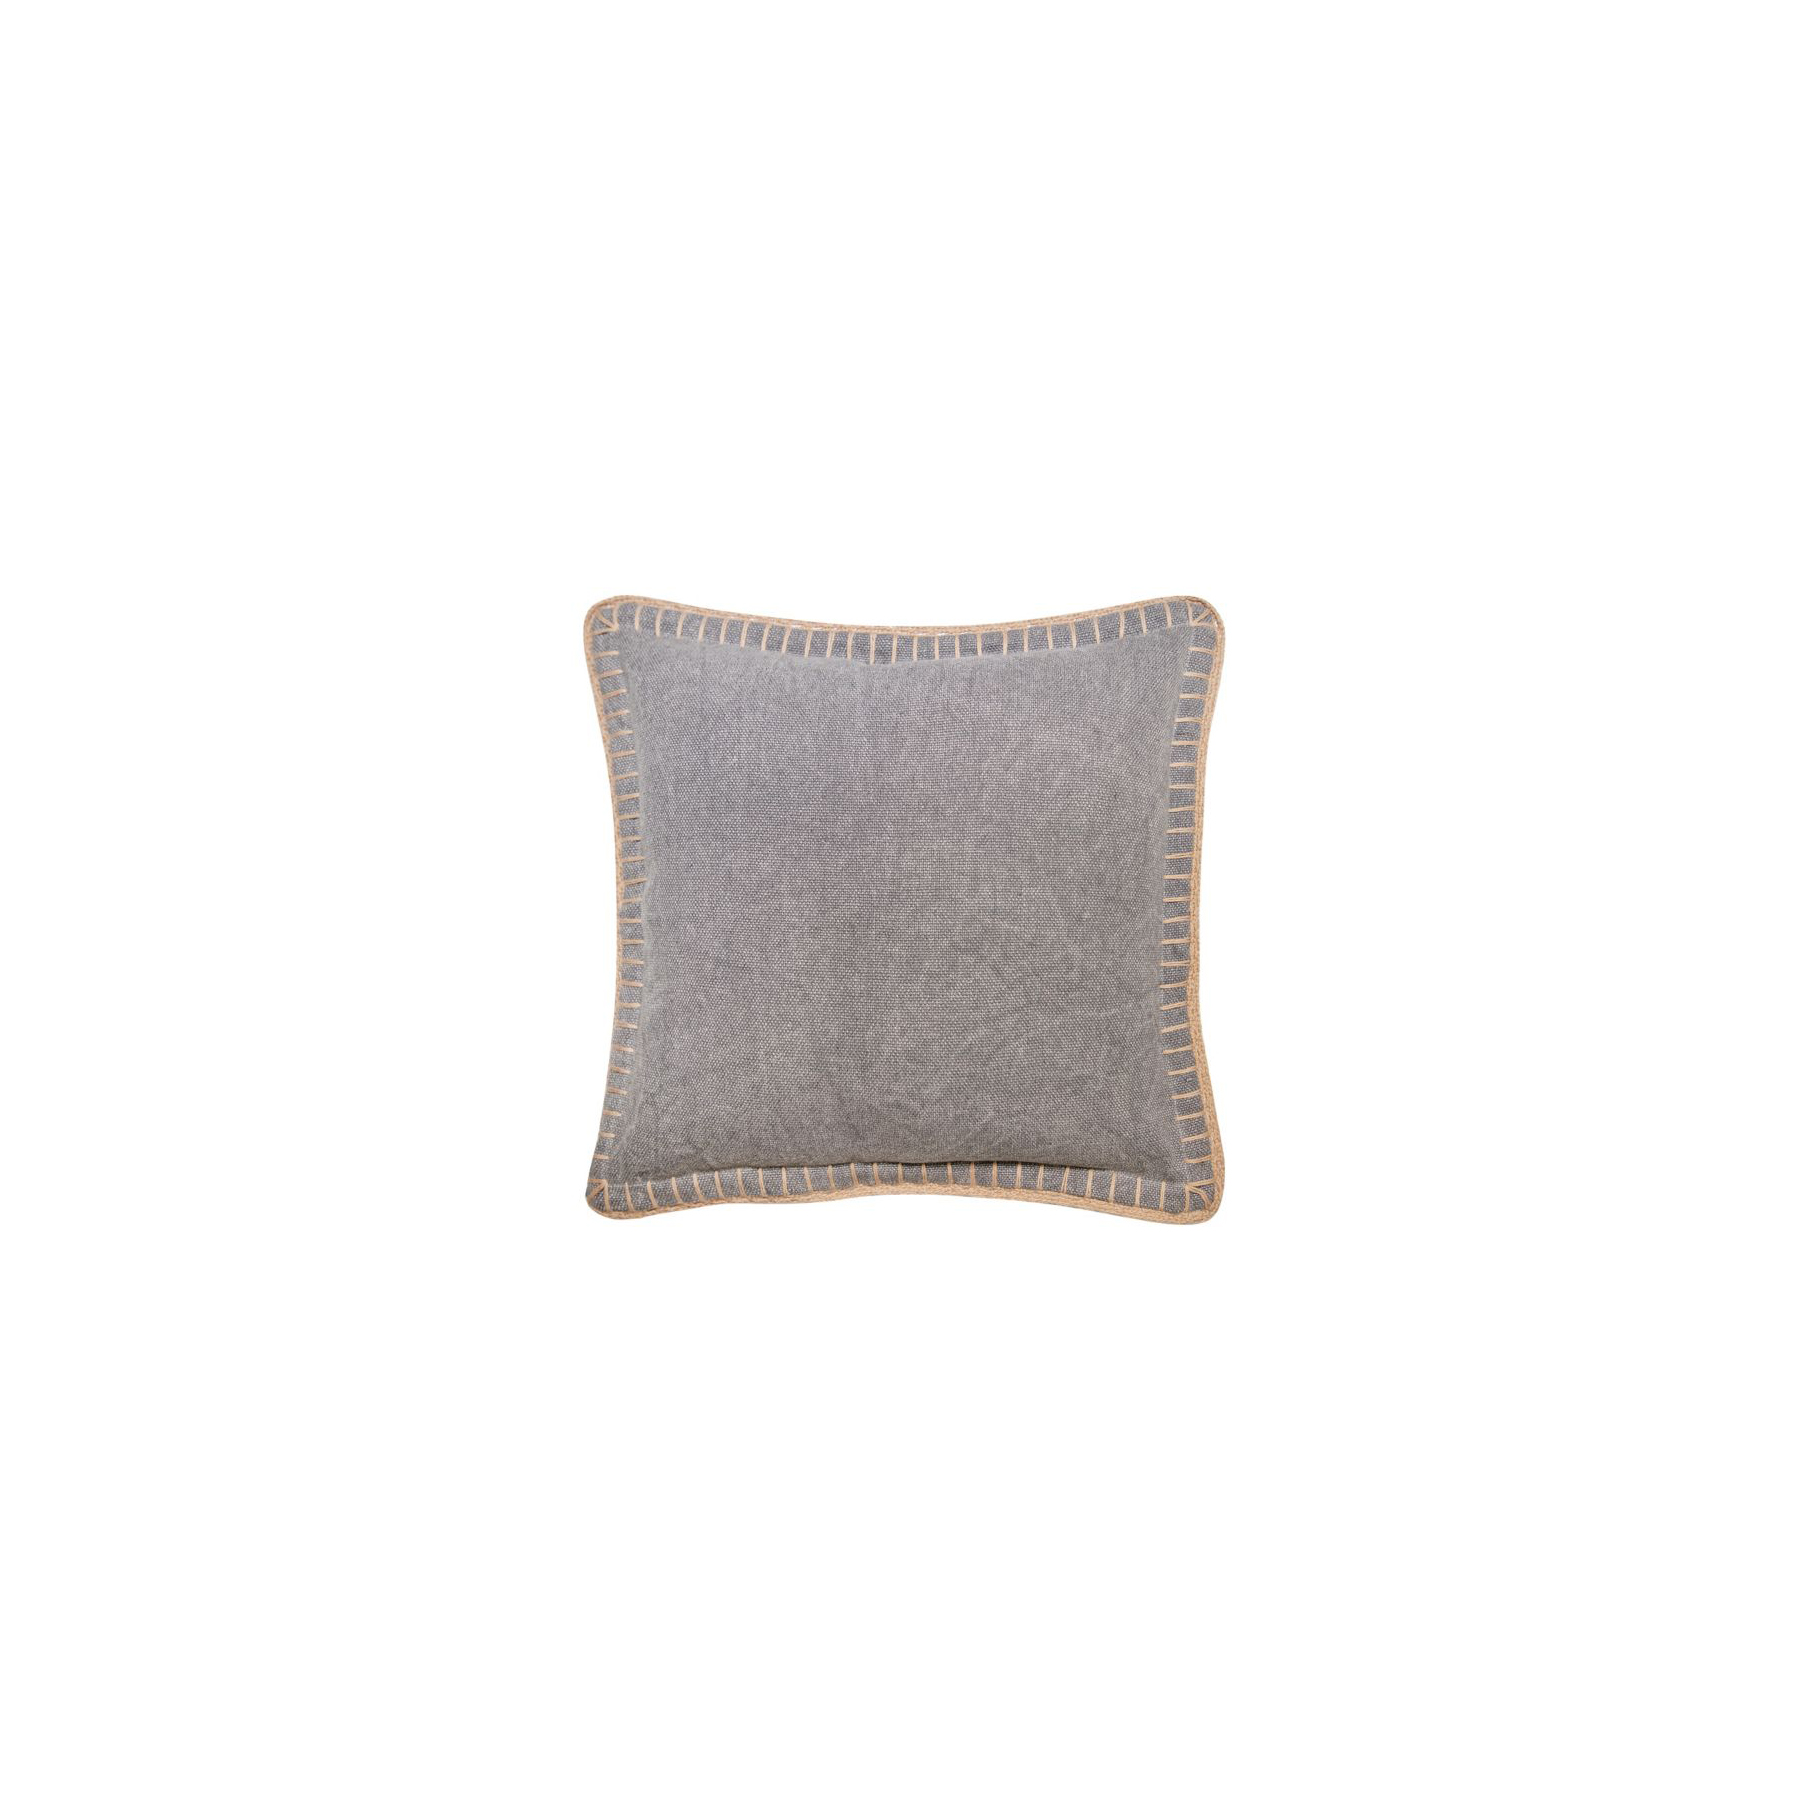 Bee & Willow Home Whipstitch Square Throw Pillow